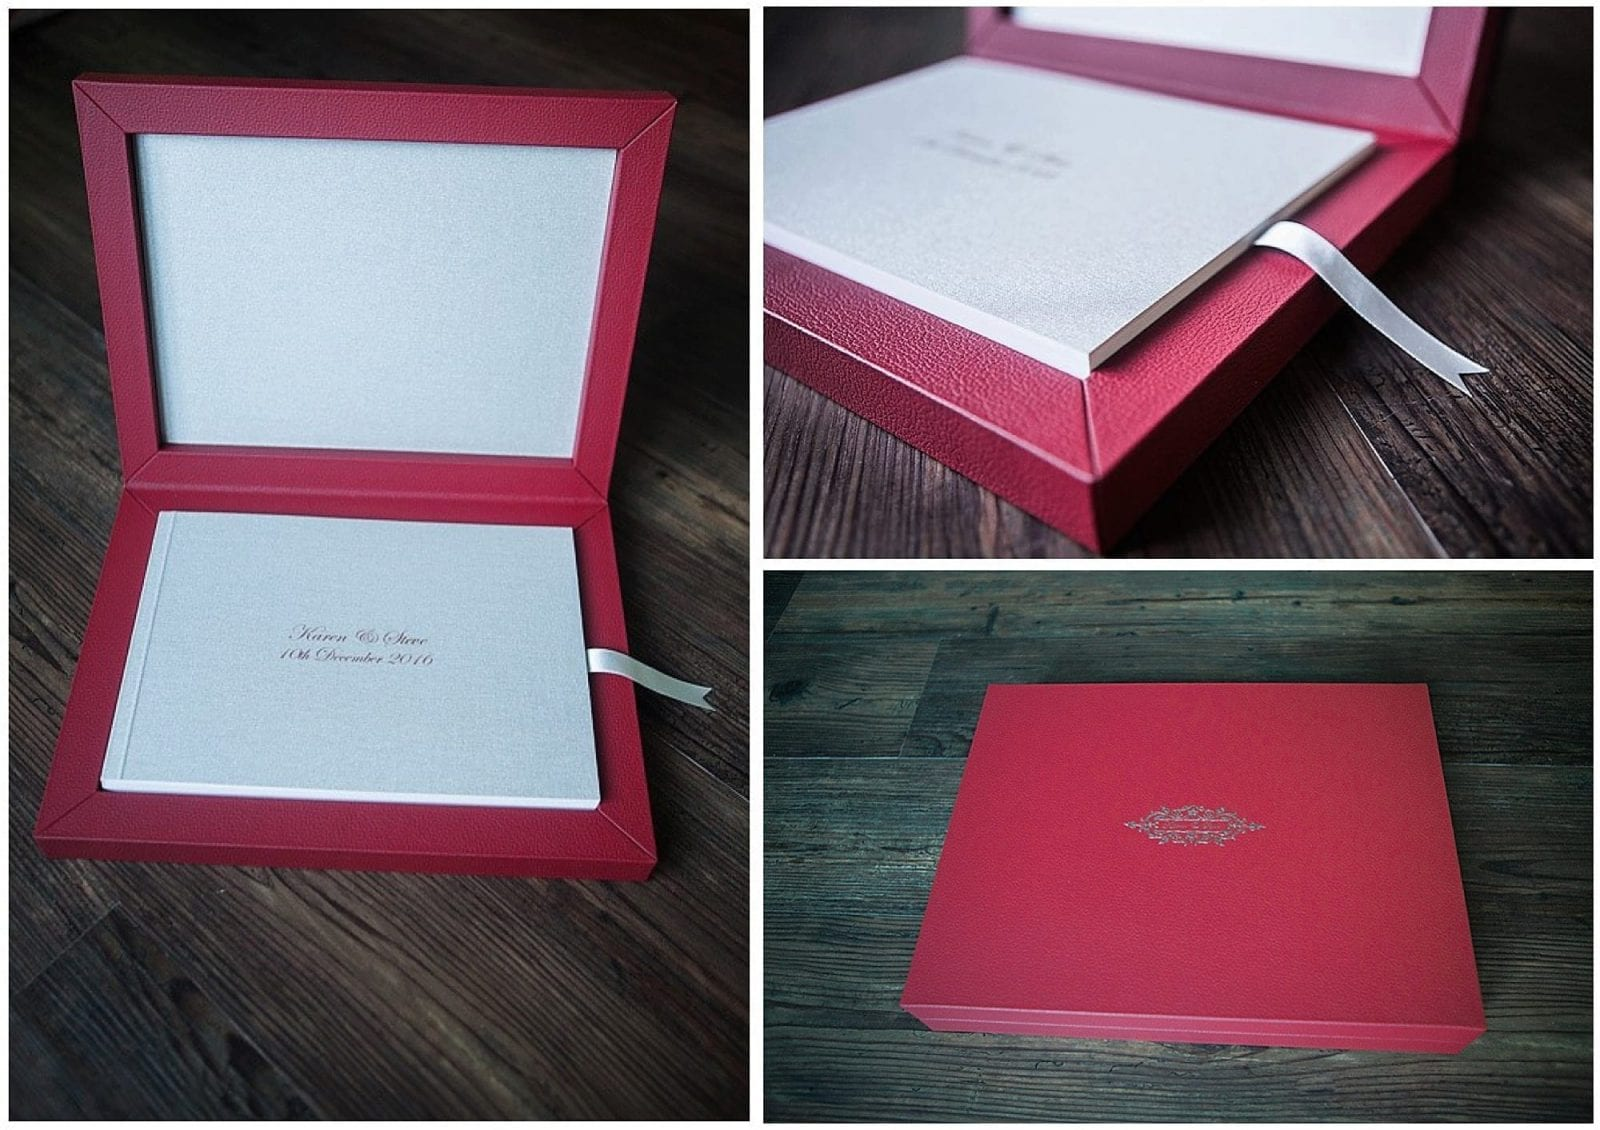 Younger wedding books